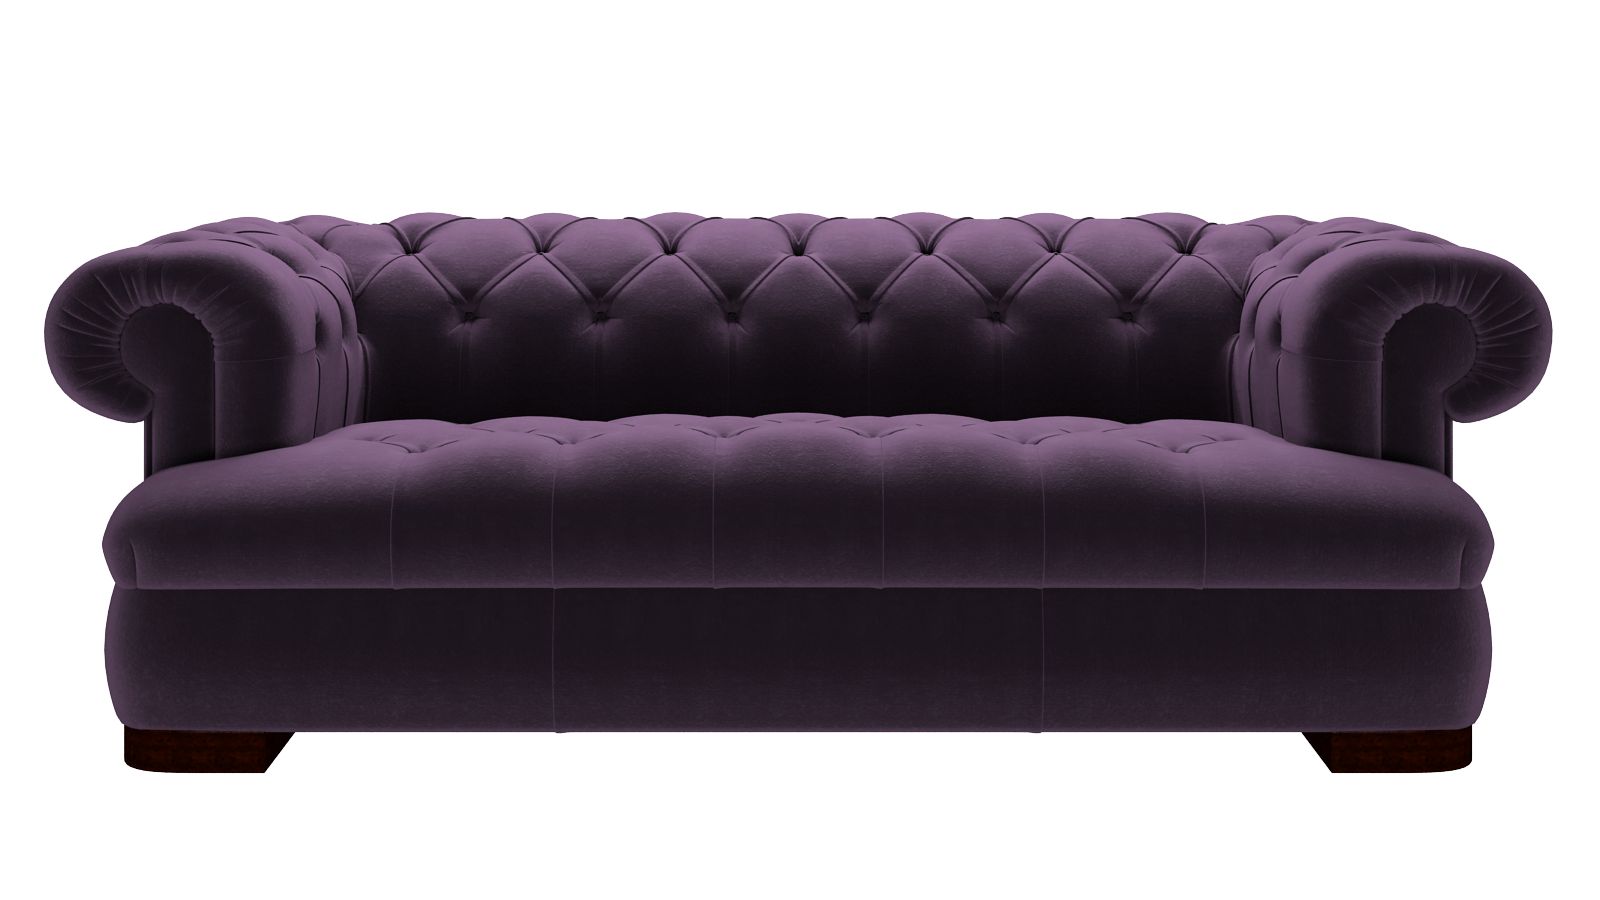 Find The Perfect Sofa With A Fabric Guide From Sofas By Saxon